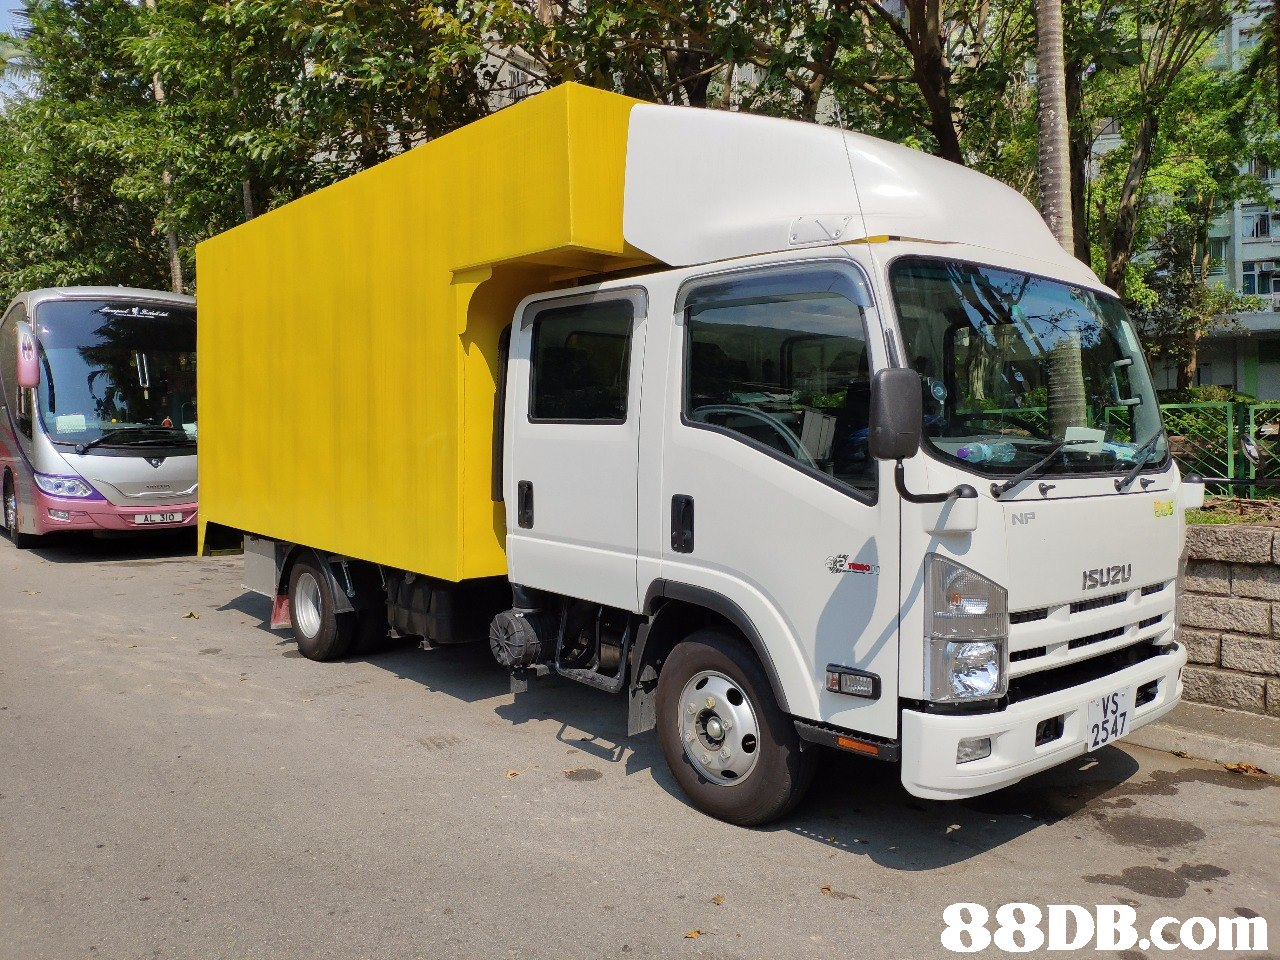 es ISUZL 88DB.com  transport